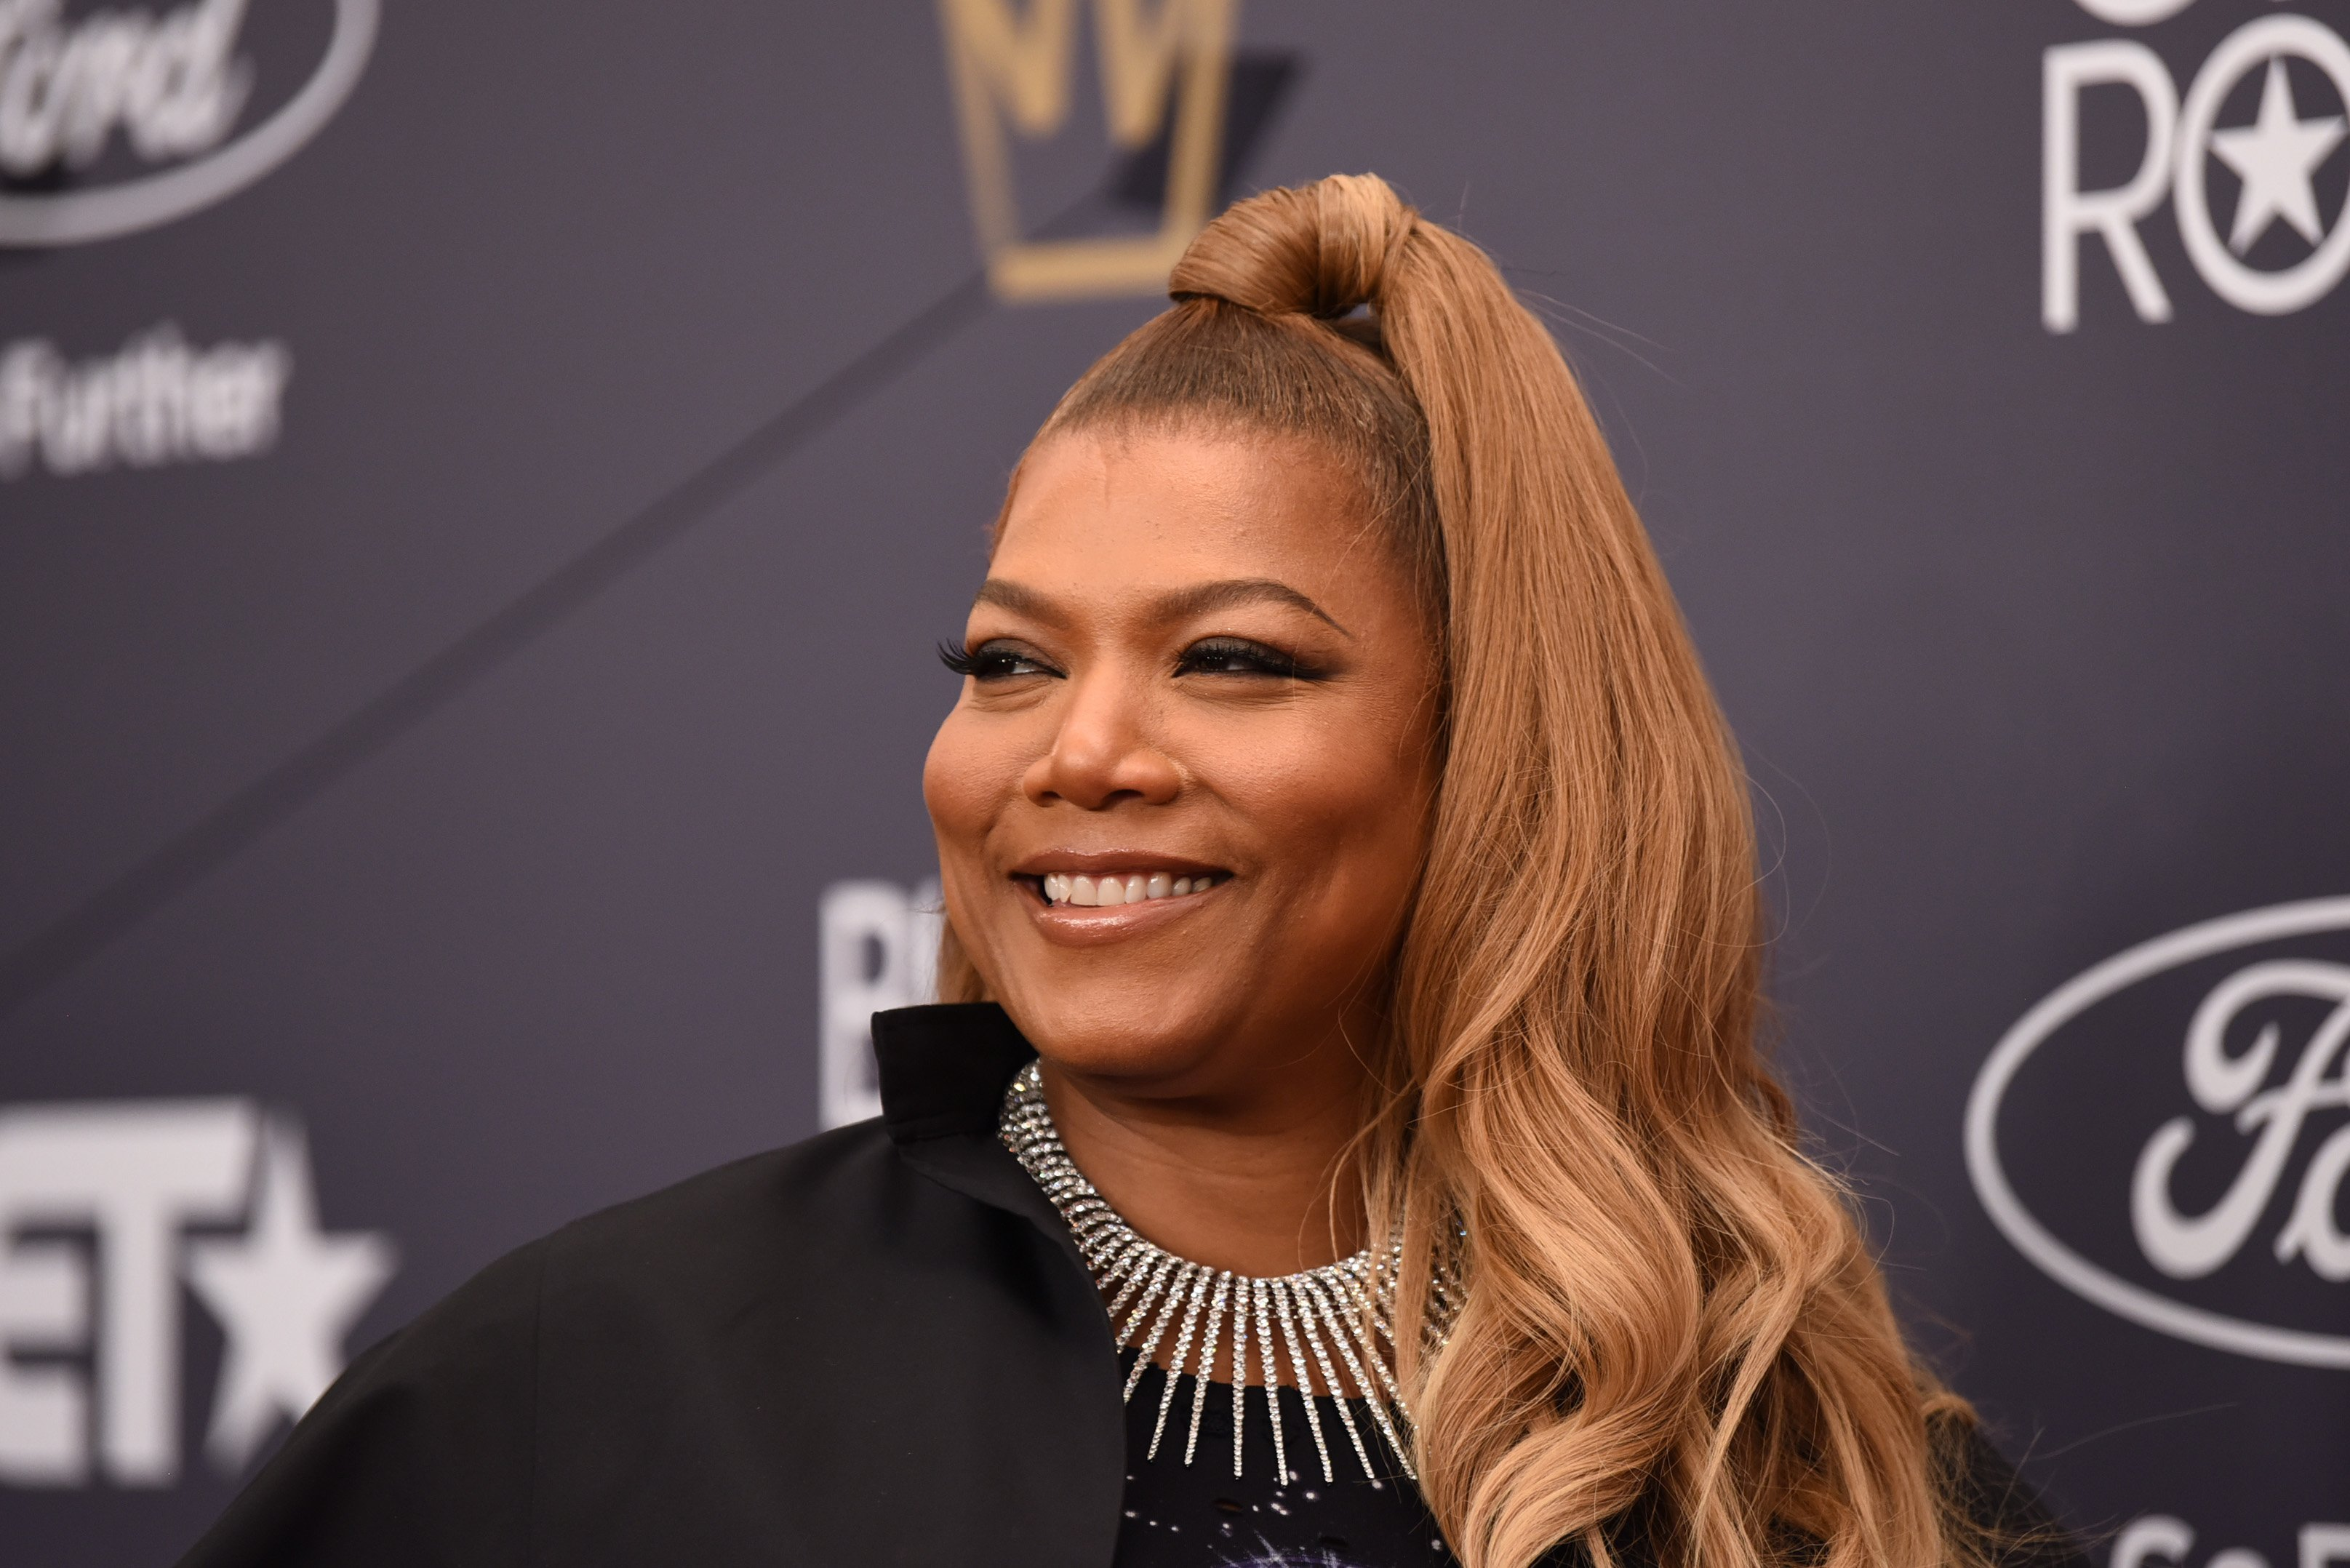 Queen Latifah at the Black Girls Rock! 2018 Red Carpet on Aug. 26, 2018 in New Jersey | Photo: Getty Images